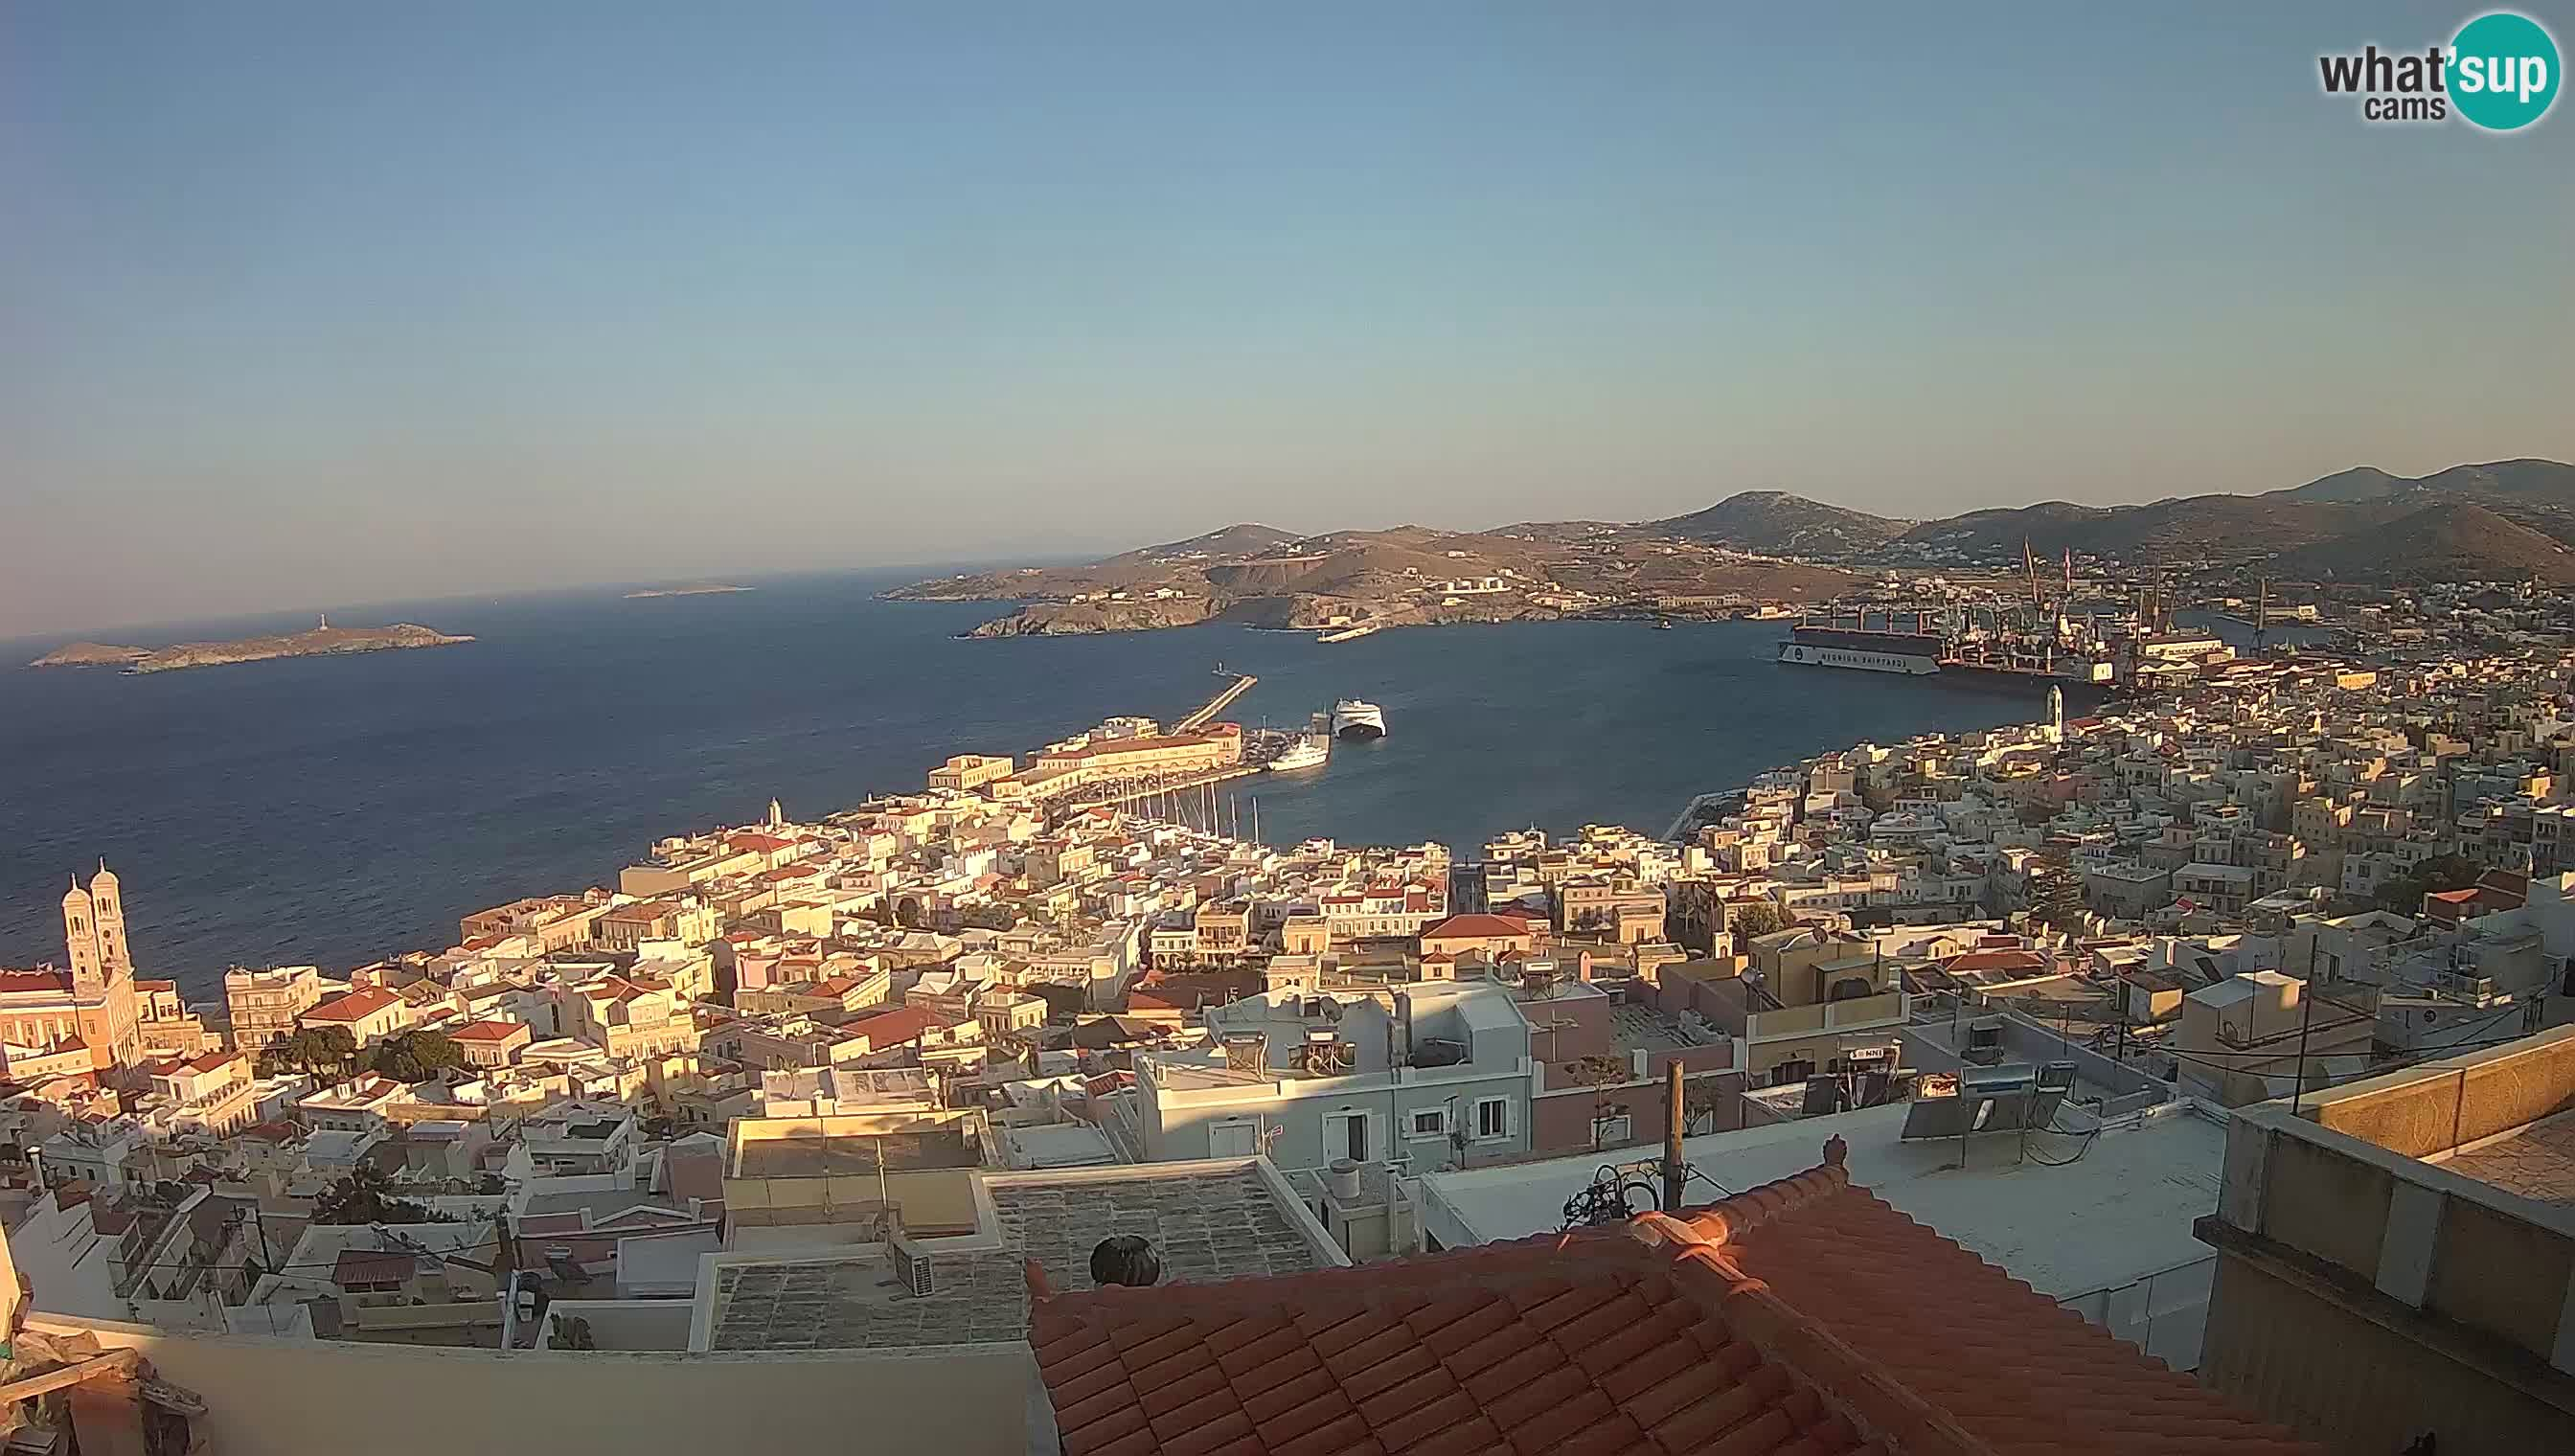 Panoramic view of Ηermoupolis and the port of Syros